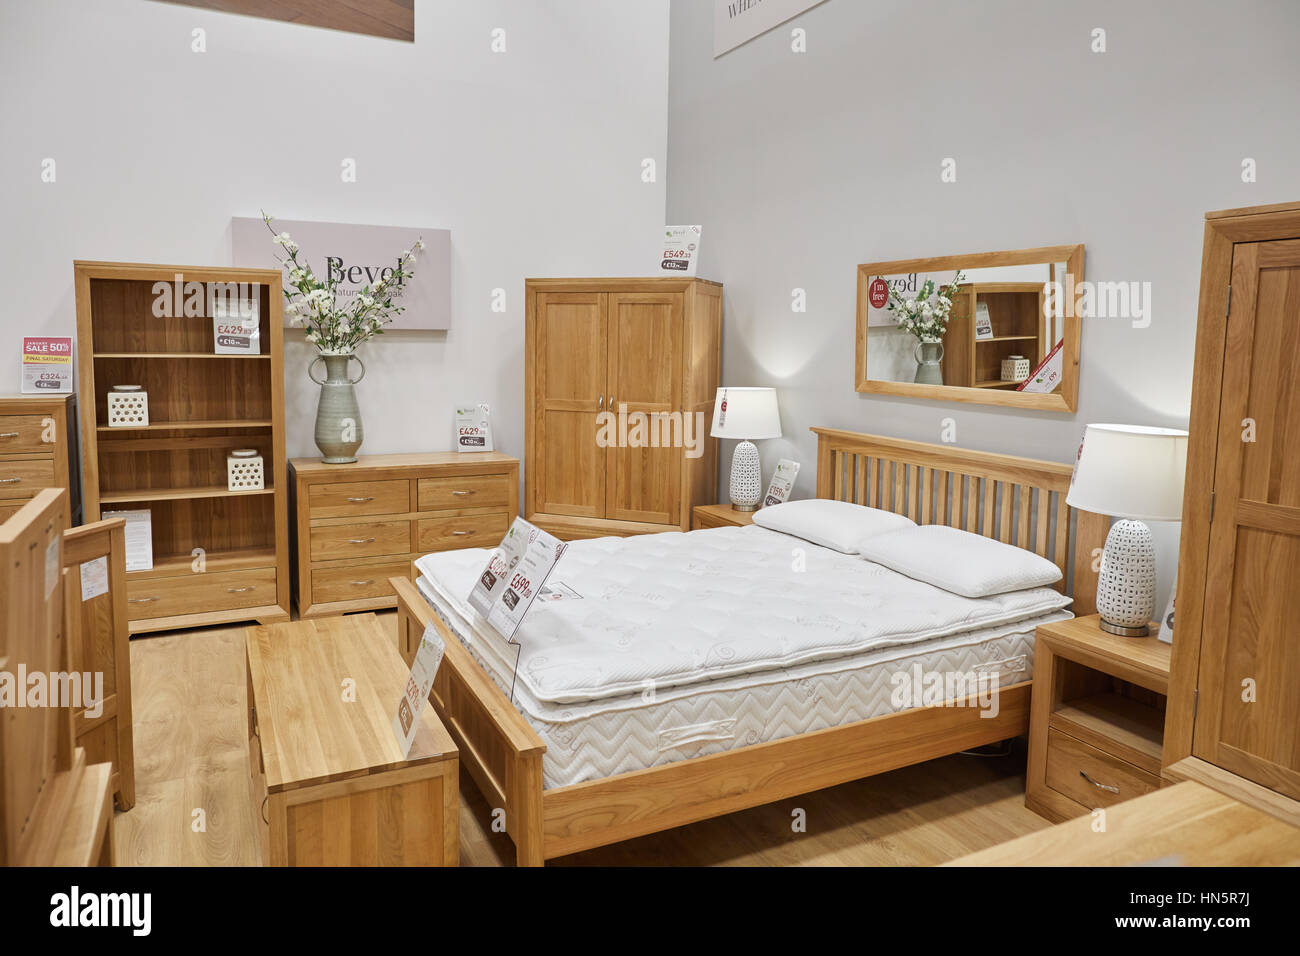 The Interior Of Macclesfield Oak Furniture Land A Privately Owned Stock Photo Alamy